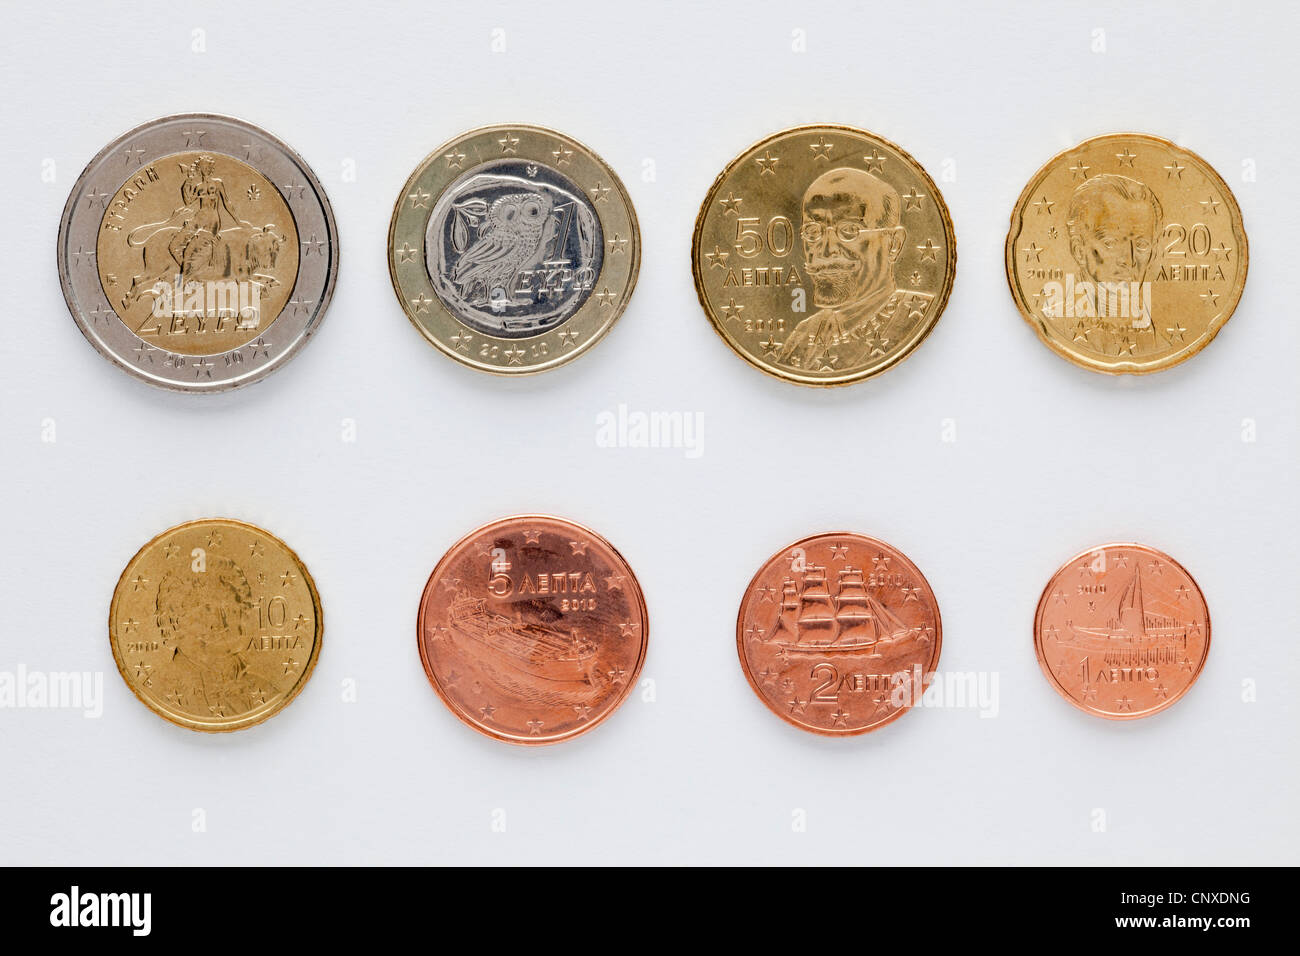 Greek euro coins arranged in numerical order, rear view - Stock Image